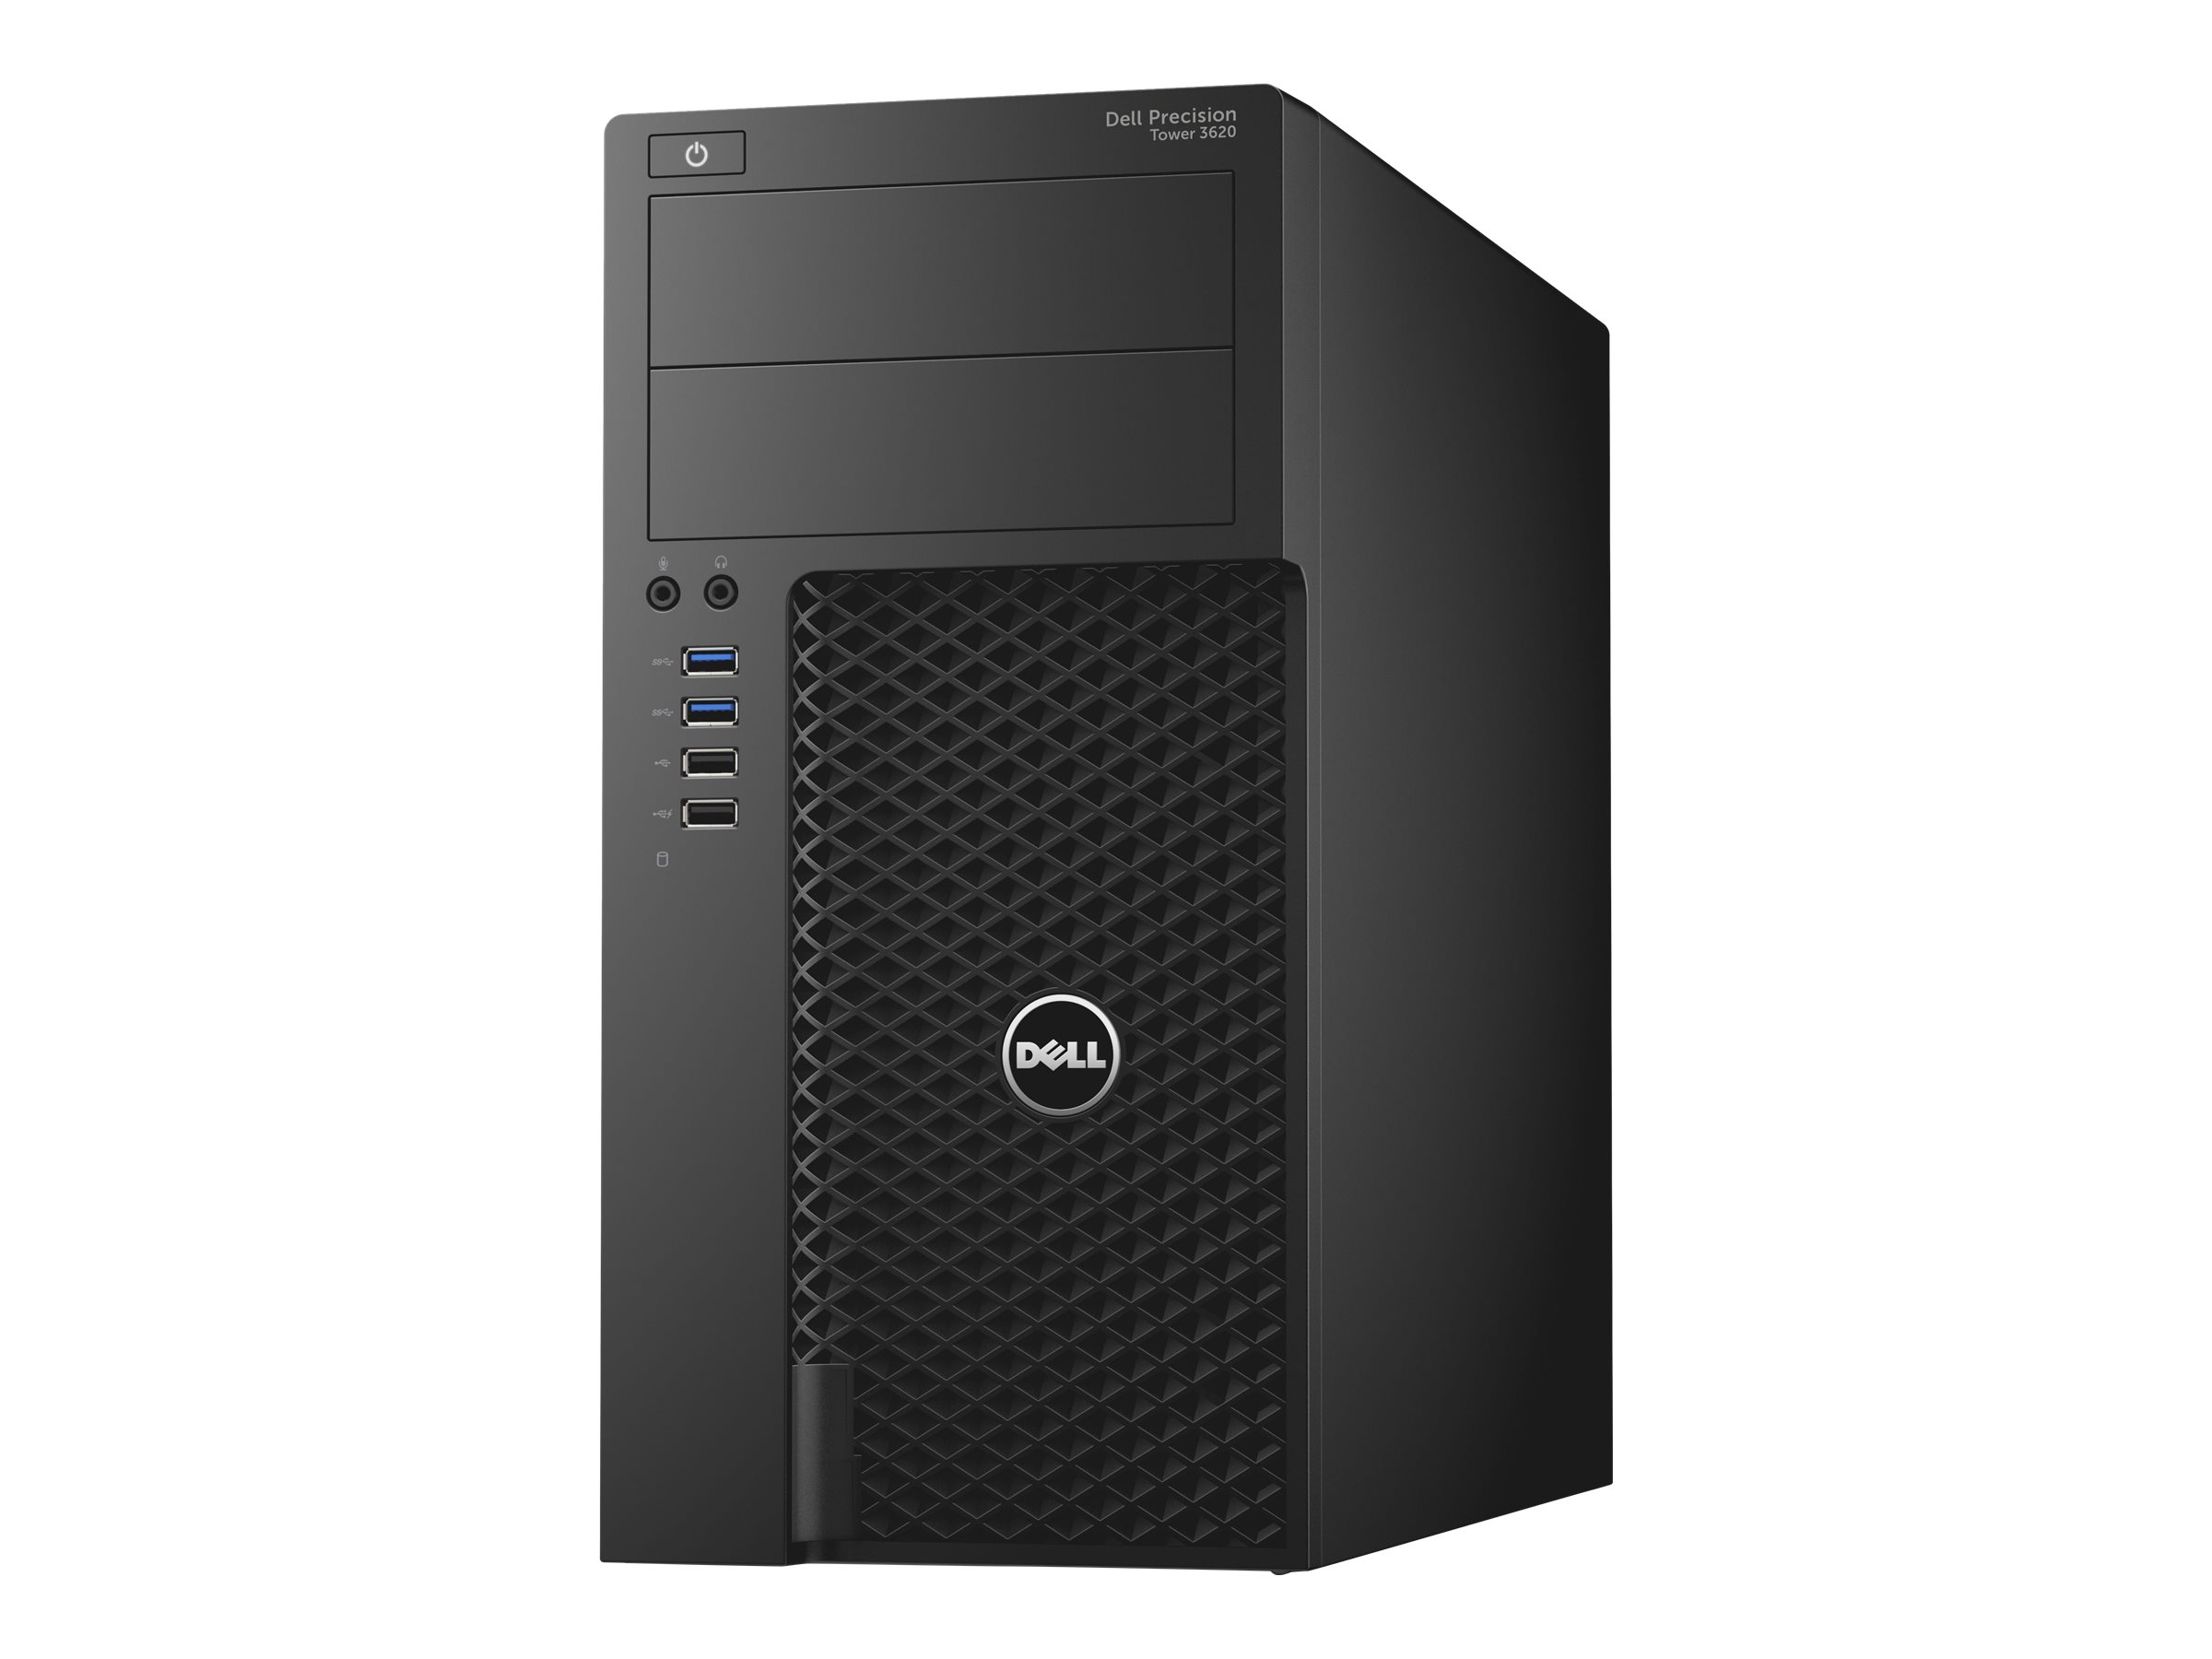 Dell Precision Tower 3620 - MT - 1 x Core i7 6700 / 3.4 GHz - RAM 16 GB - HDD 1 TB - DVD-Writer